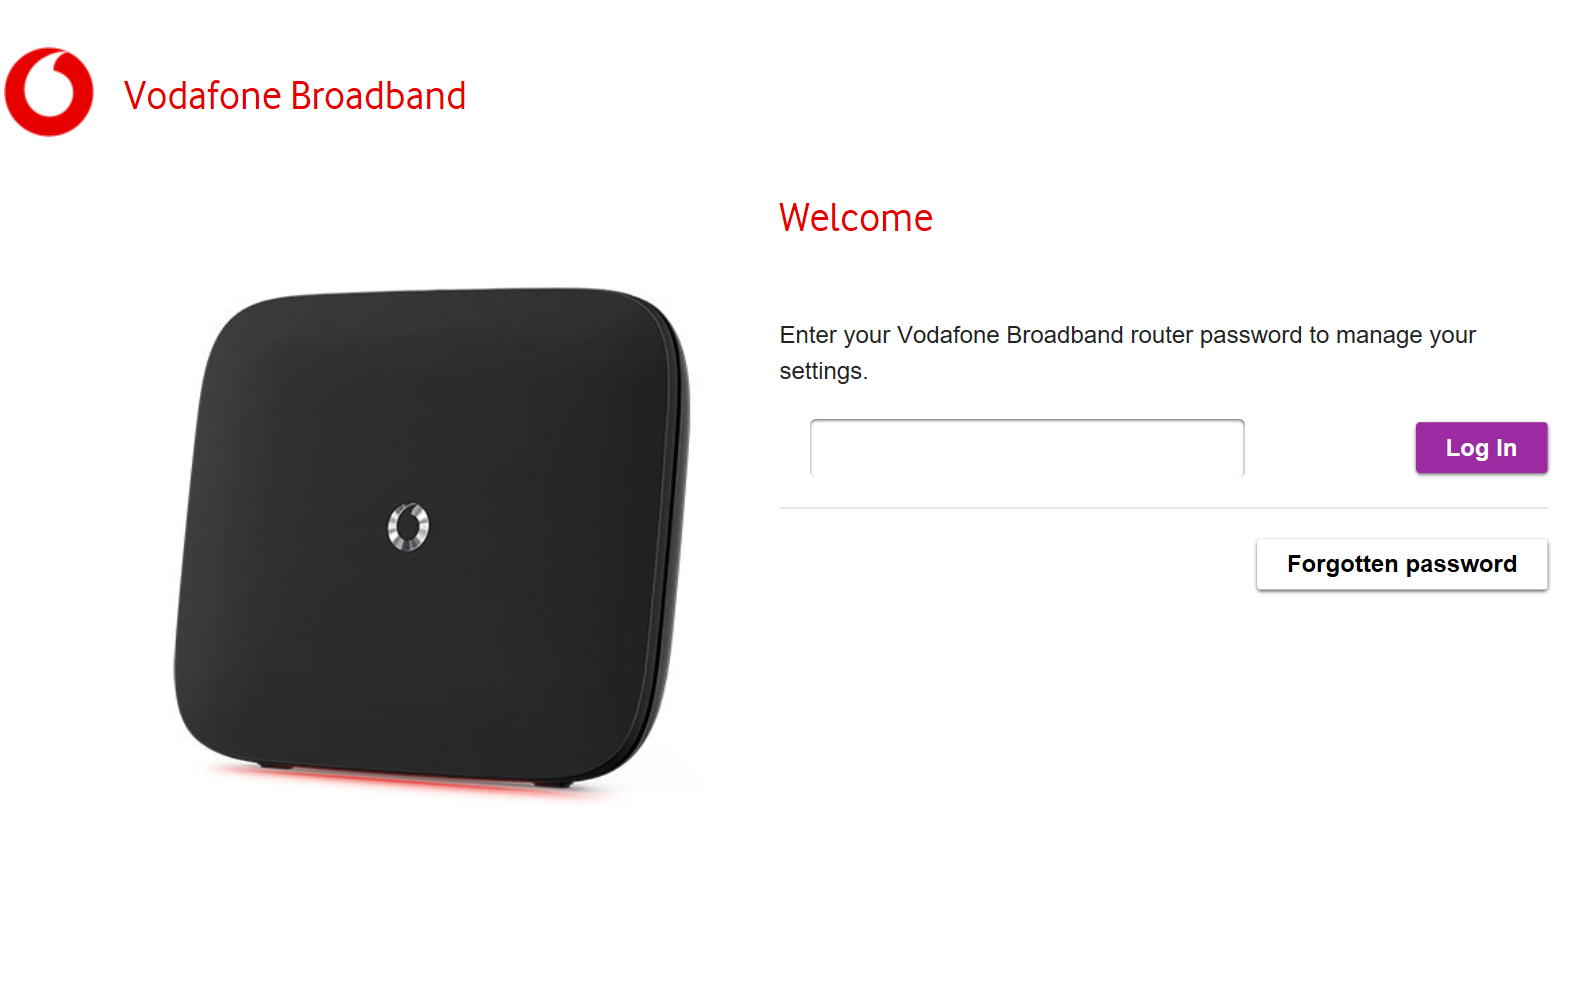 VODAFONE Broadband Not Displaying Images | The Busy Papa